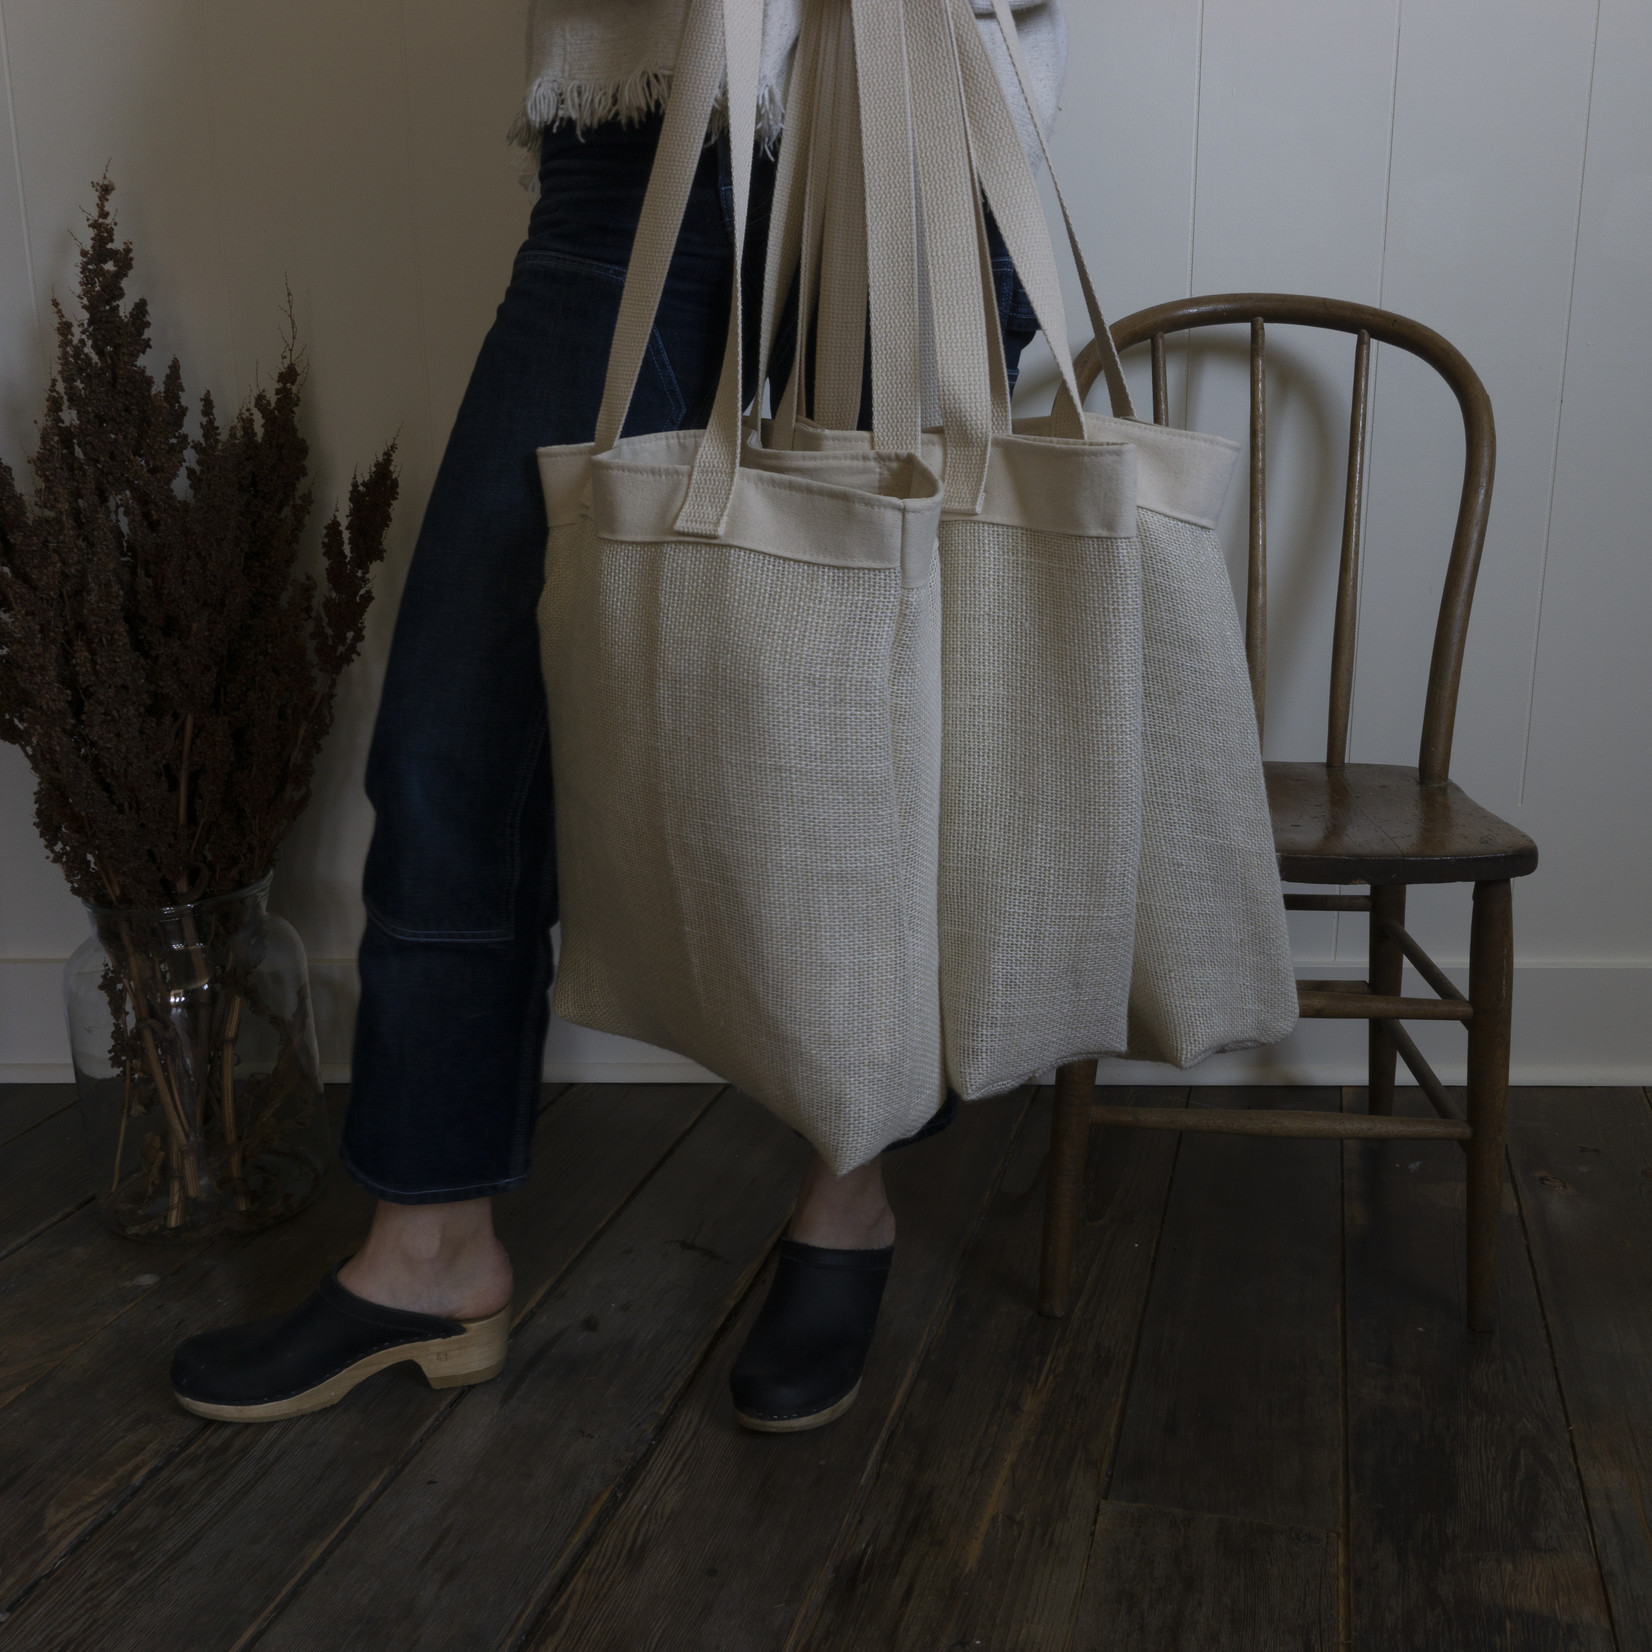 New Old Friend Reusable Shopping Bag